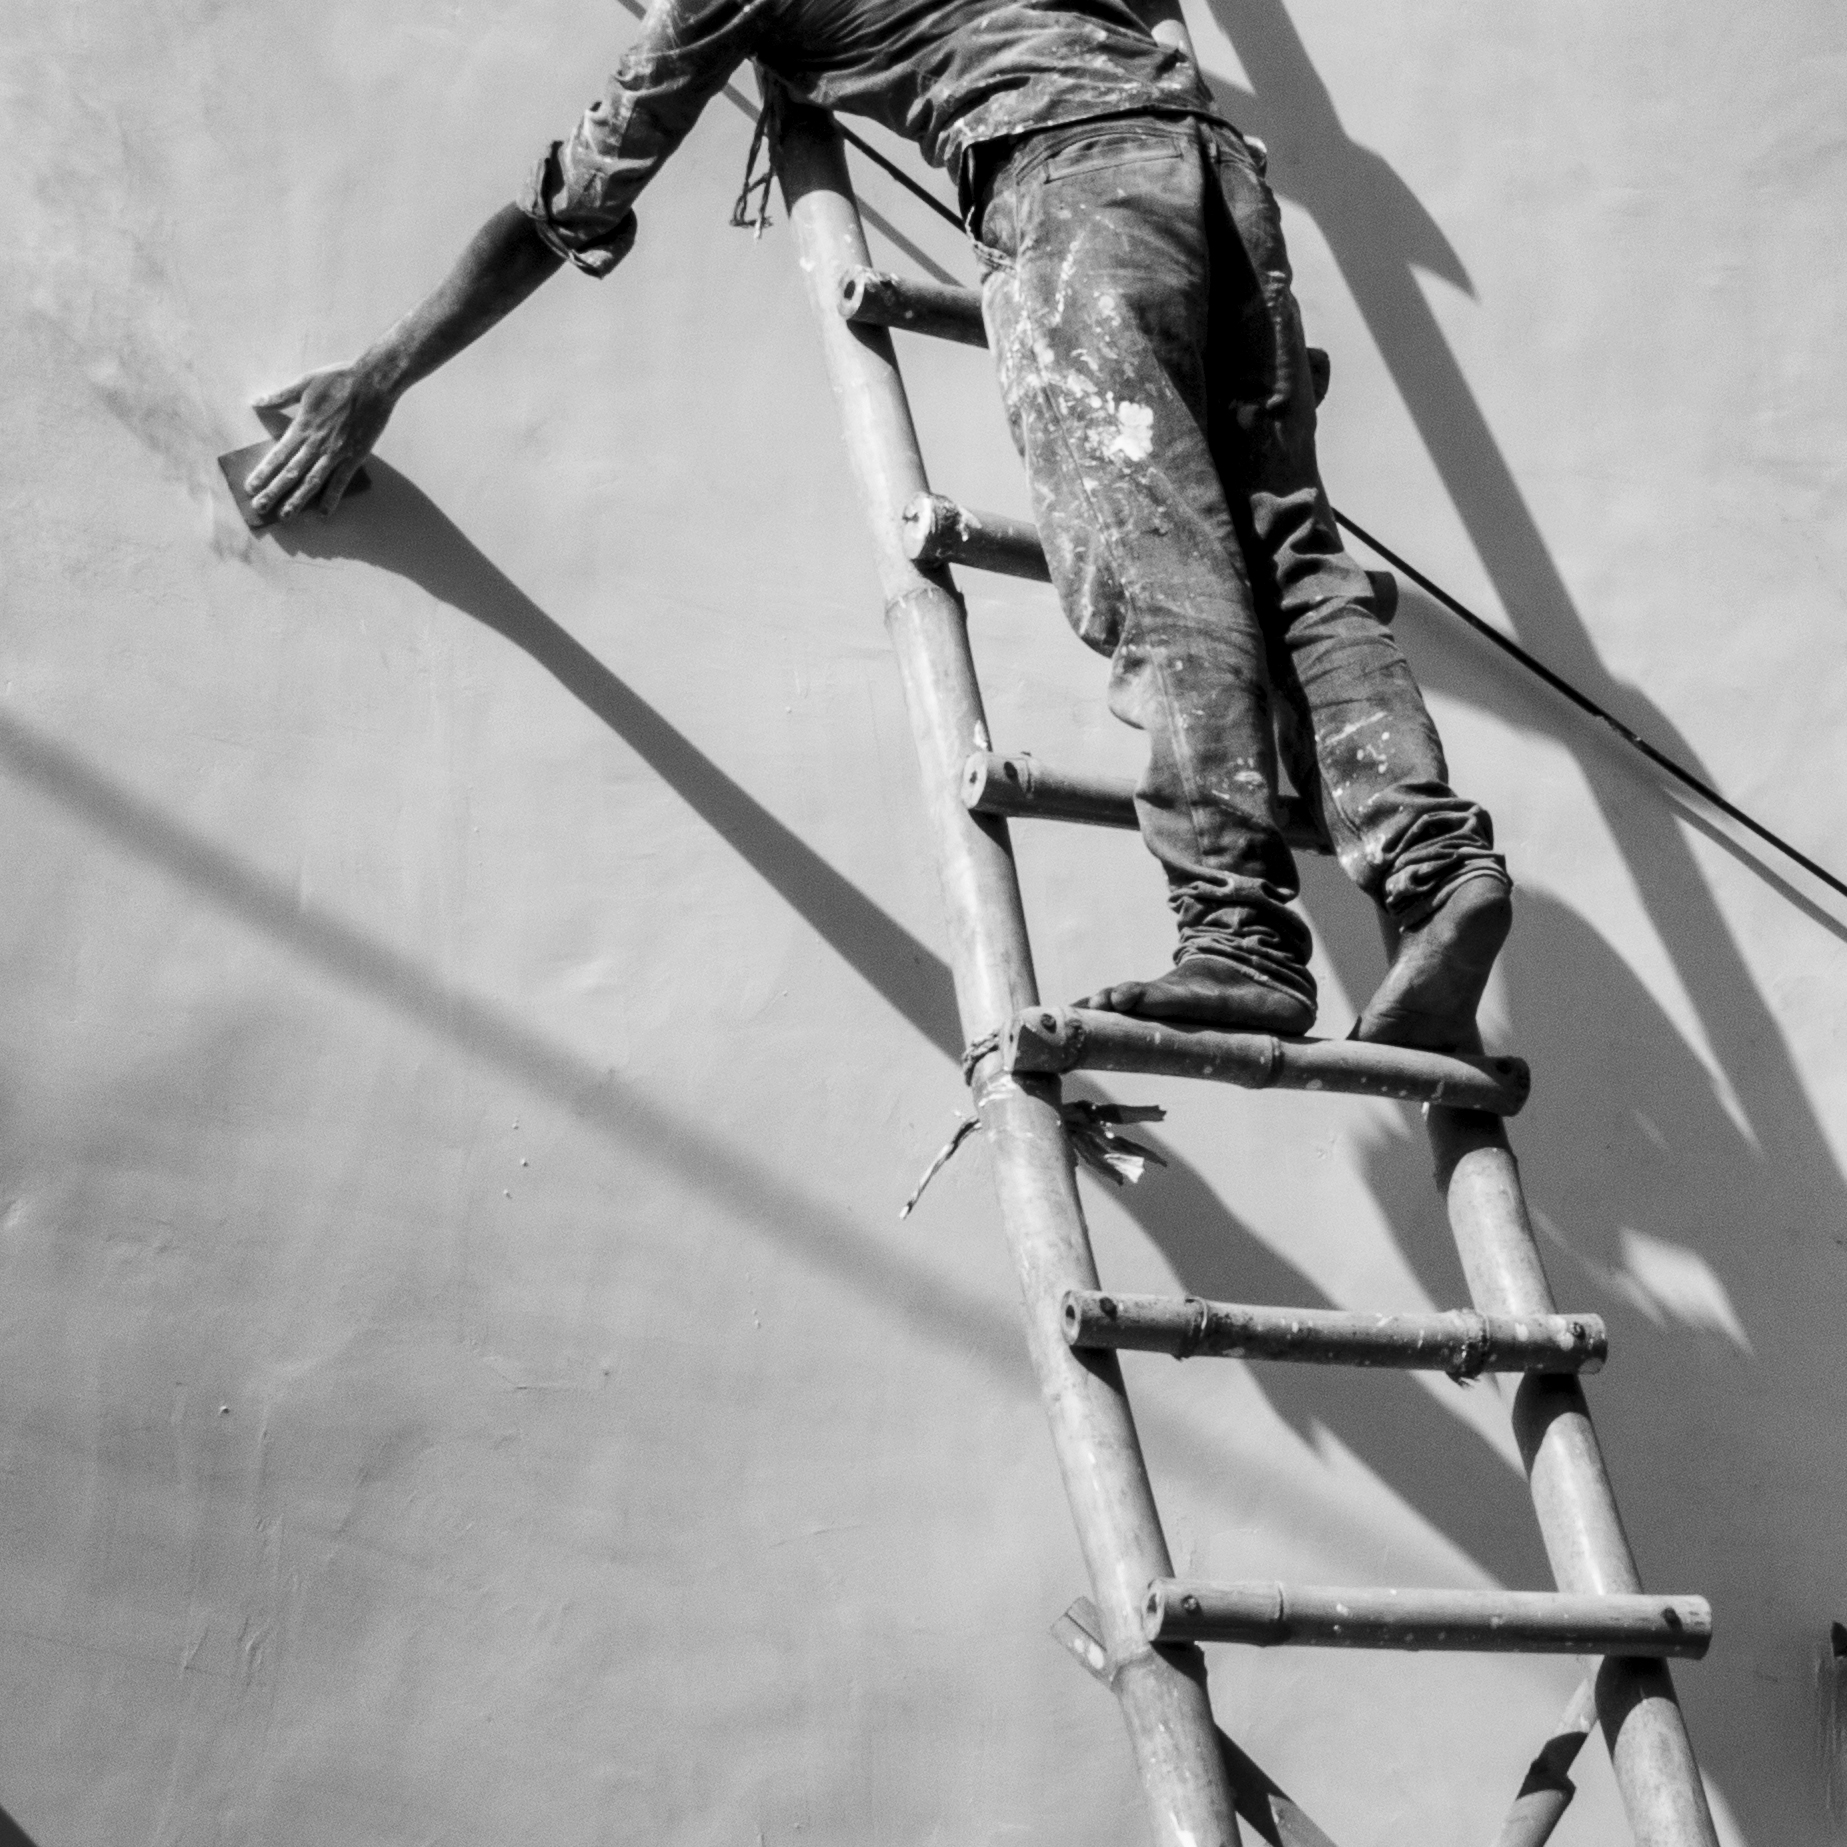 """Ladder Work""                                                          © Russell Shakespeare 2016"